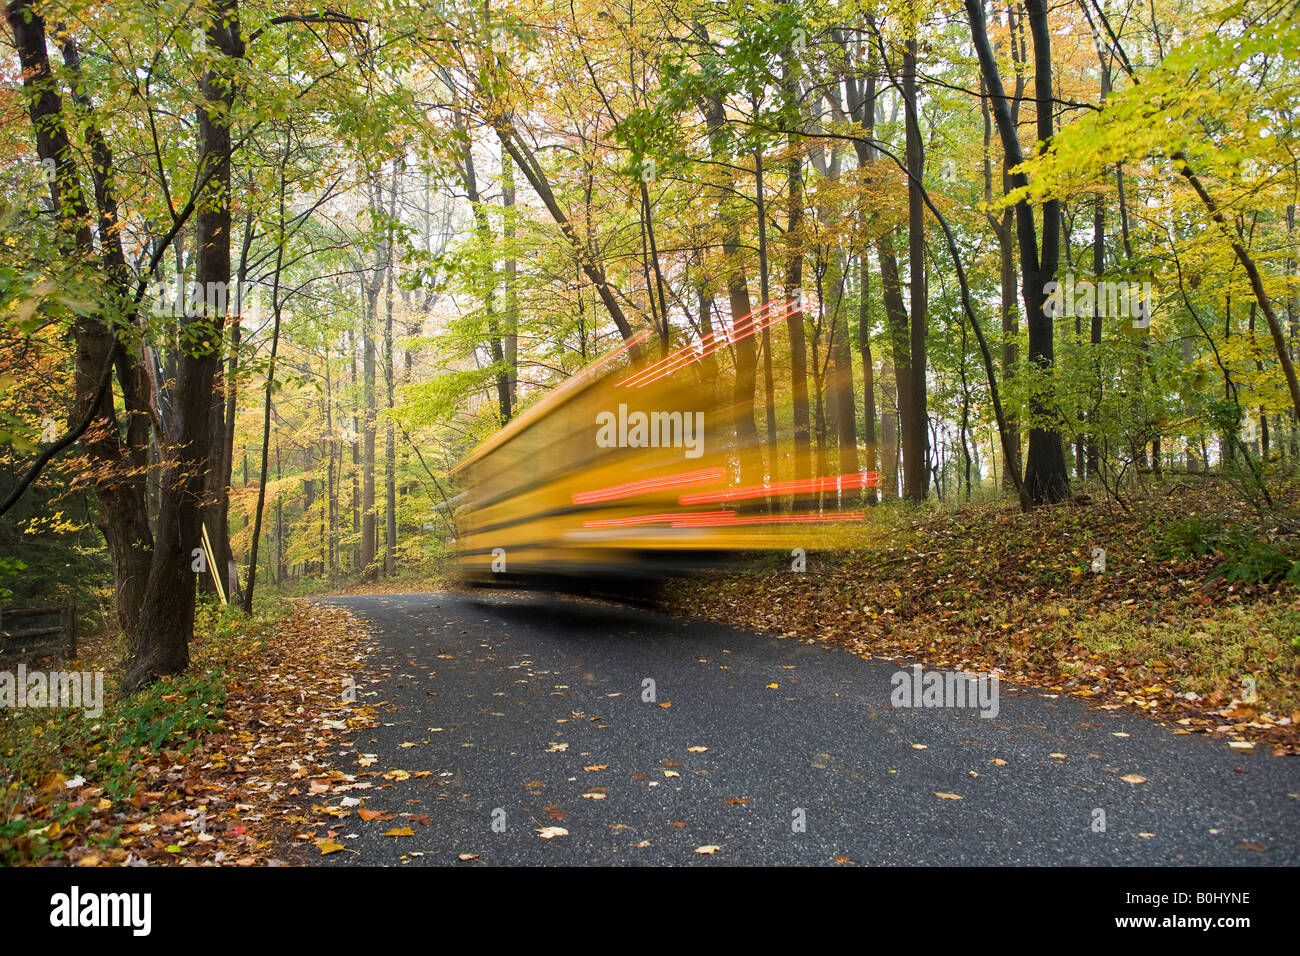 A school bus blurs by along a tree lined rural country road on an overcast day in autumn - Stock Image